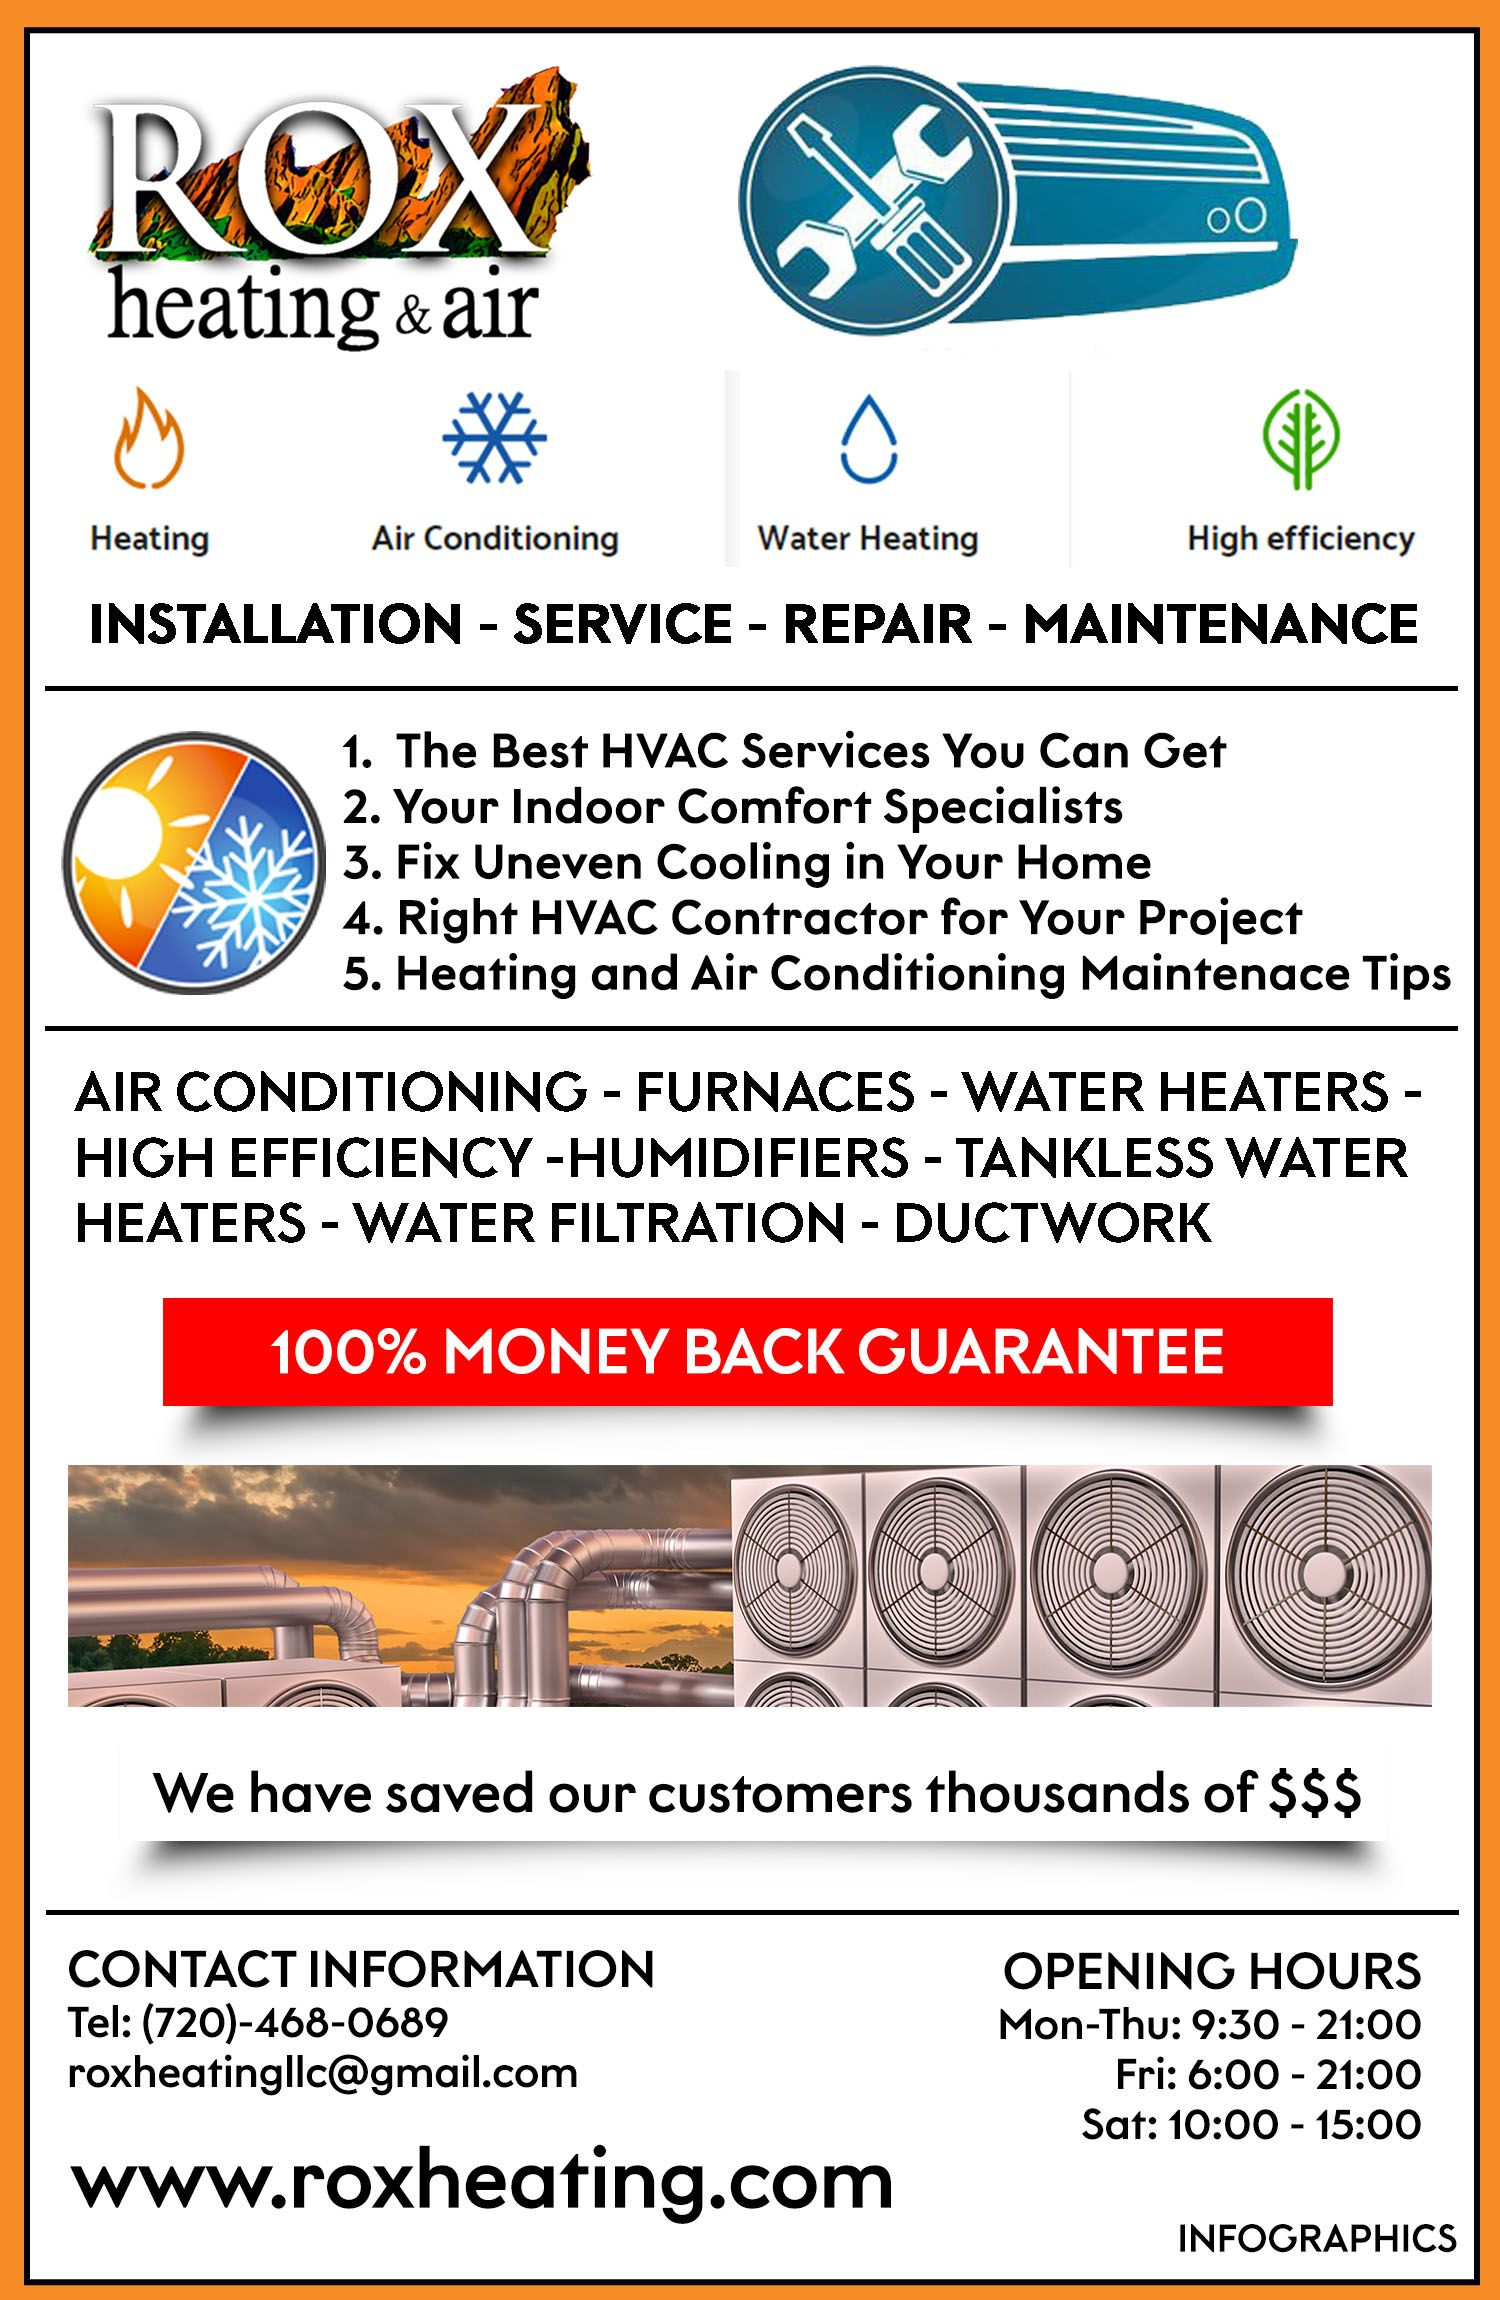 Turn to ROX Heating & Air for top notch heating services